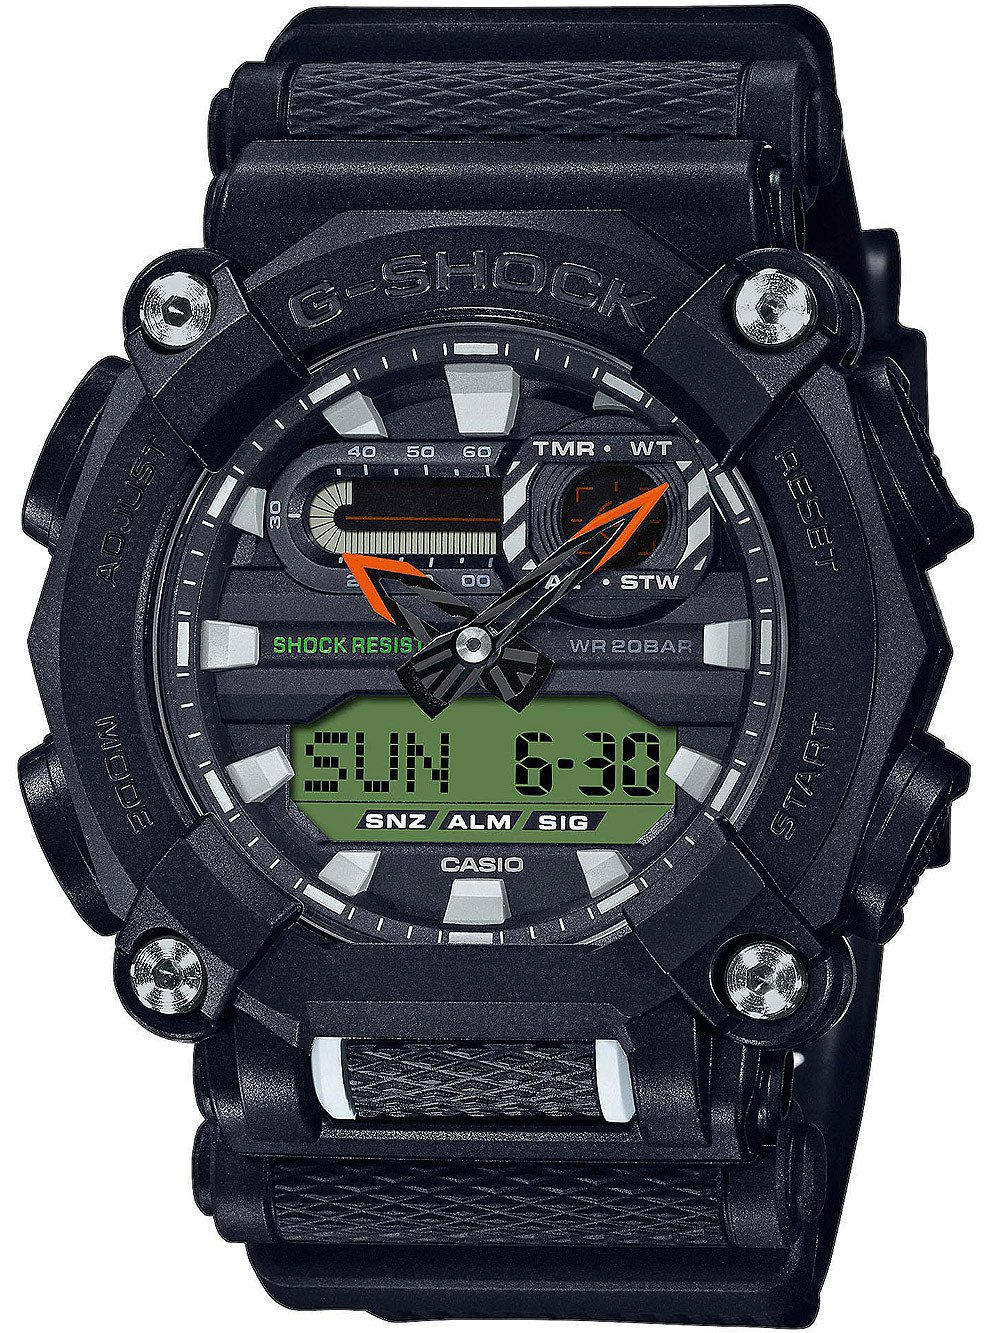 Casio GA-900E-1A3ER G-Shock 49mm 20ATM